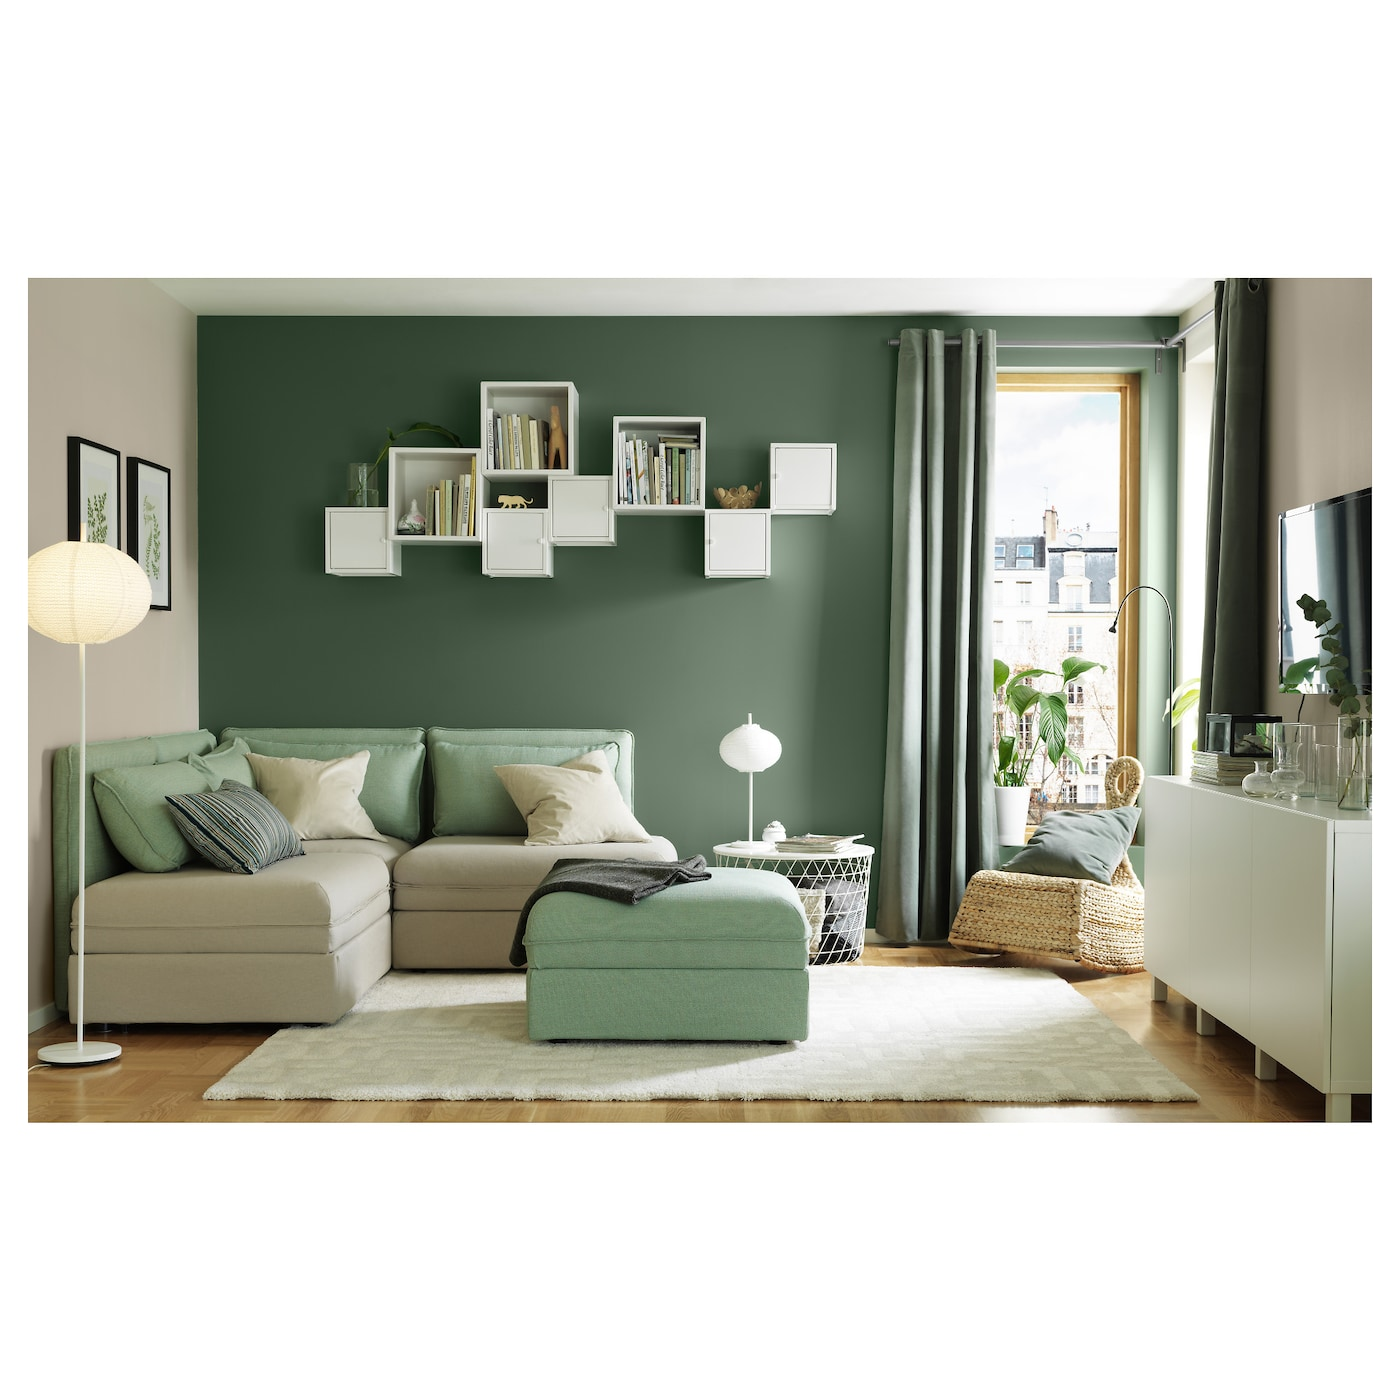 Image Result For Curtains For Living Room With Grey Furniture